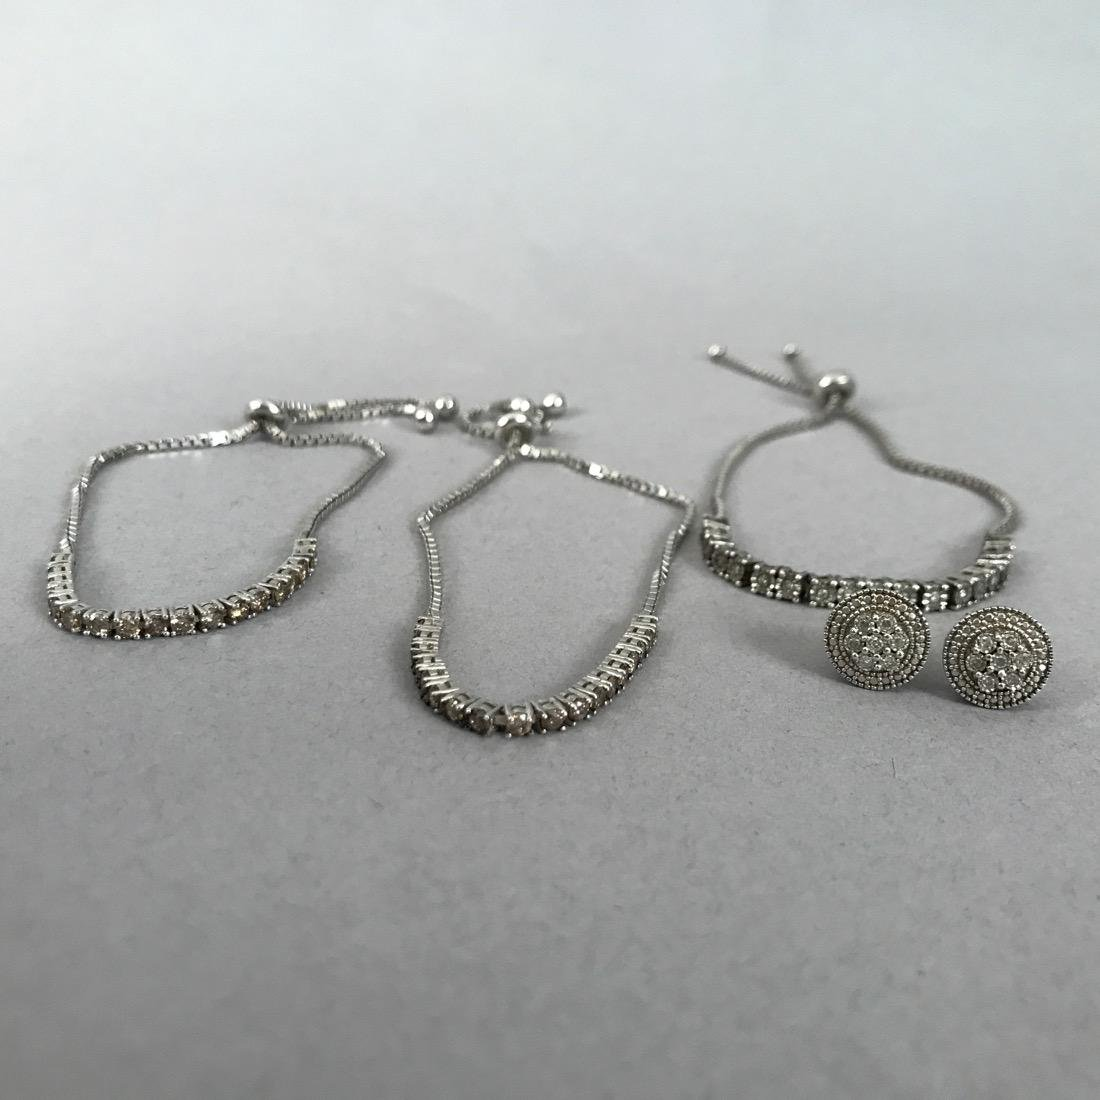 3 Sterling & Diamond Bracelets & Pr Earrings